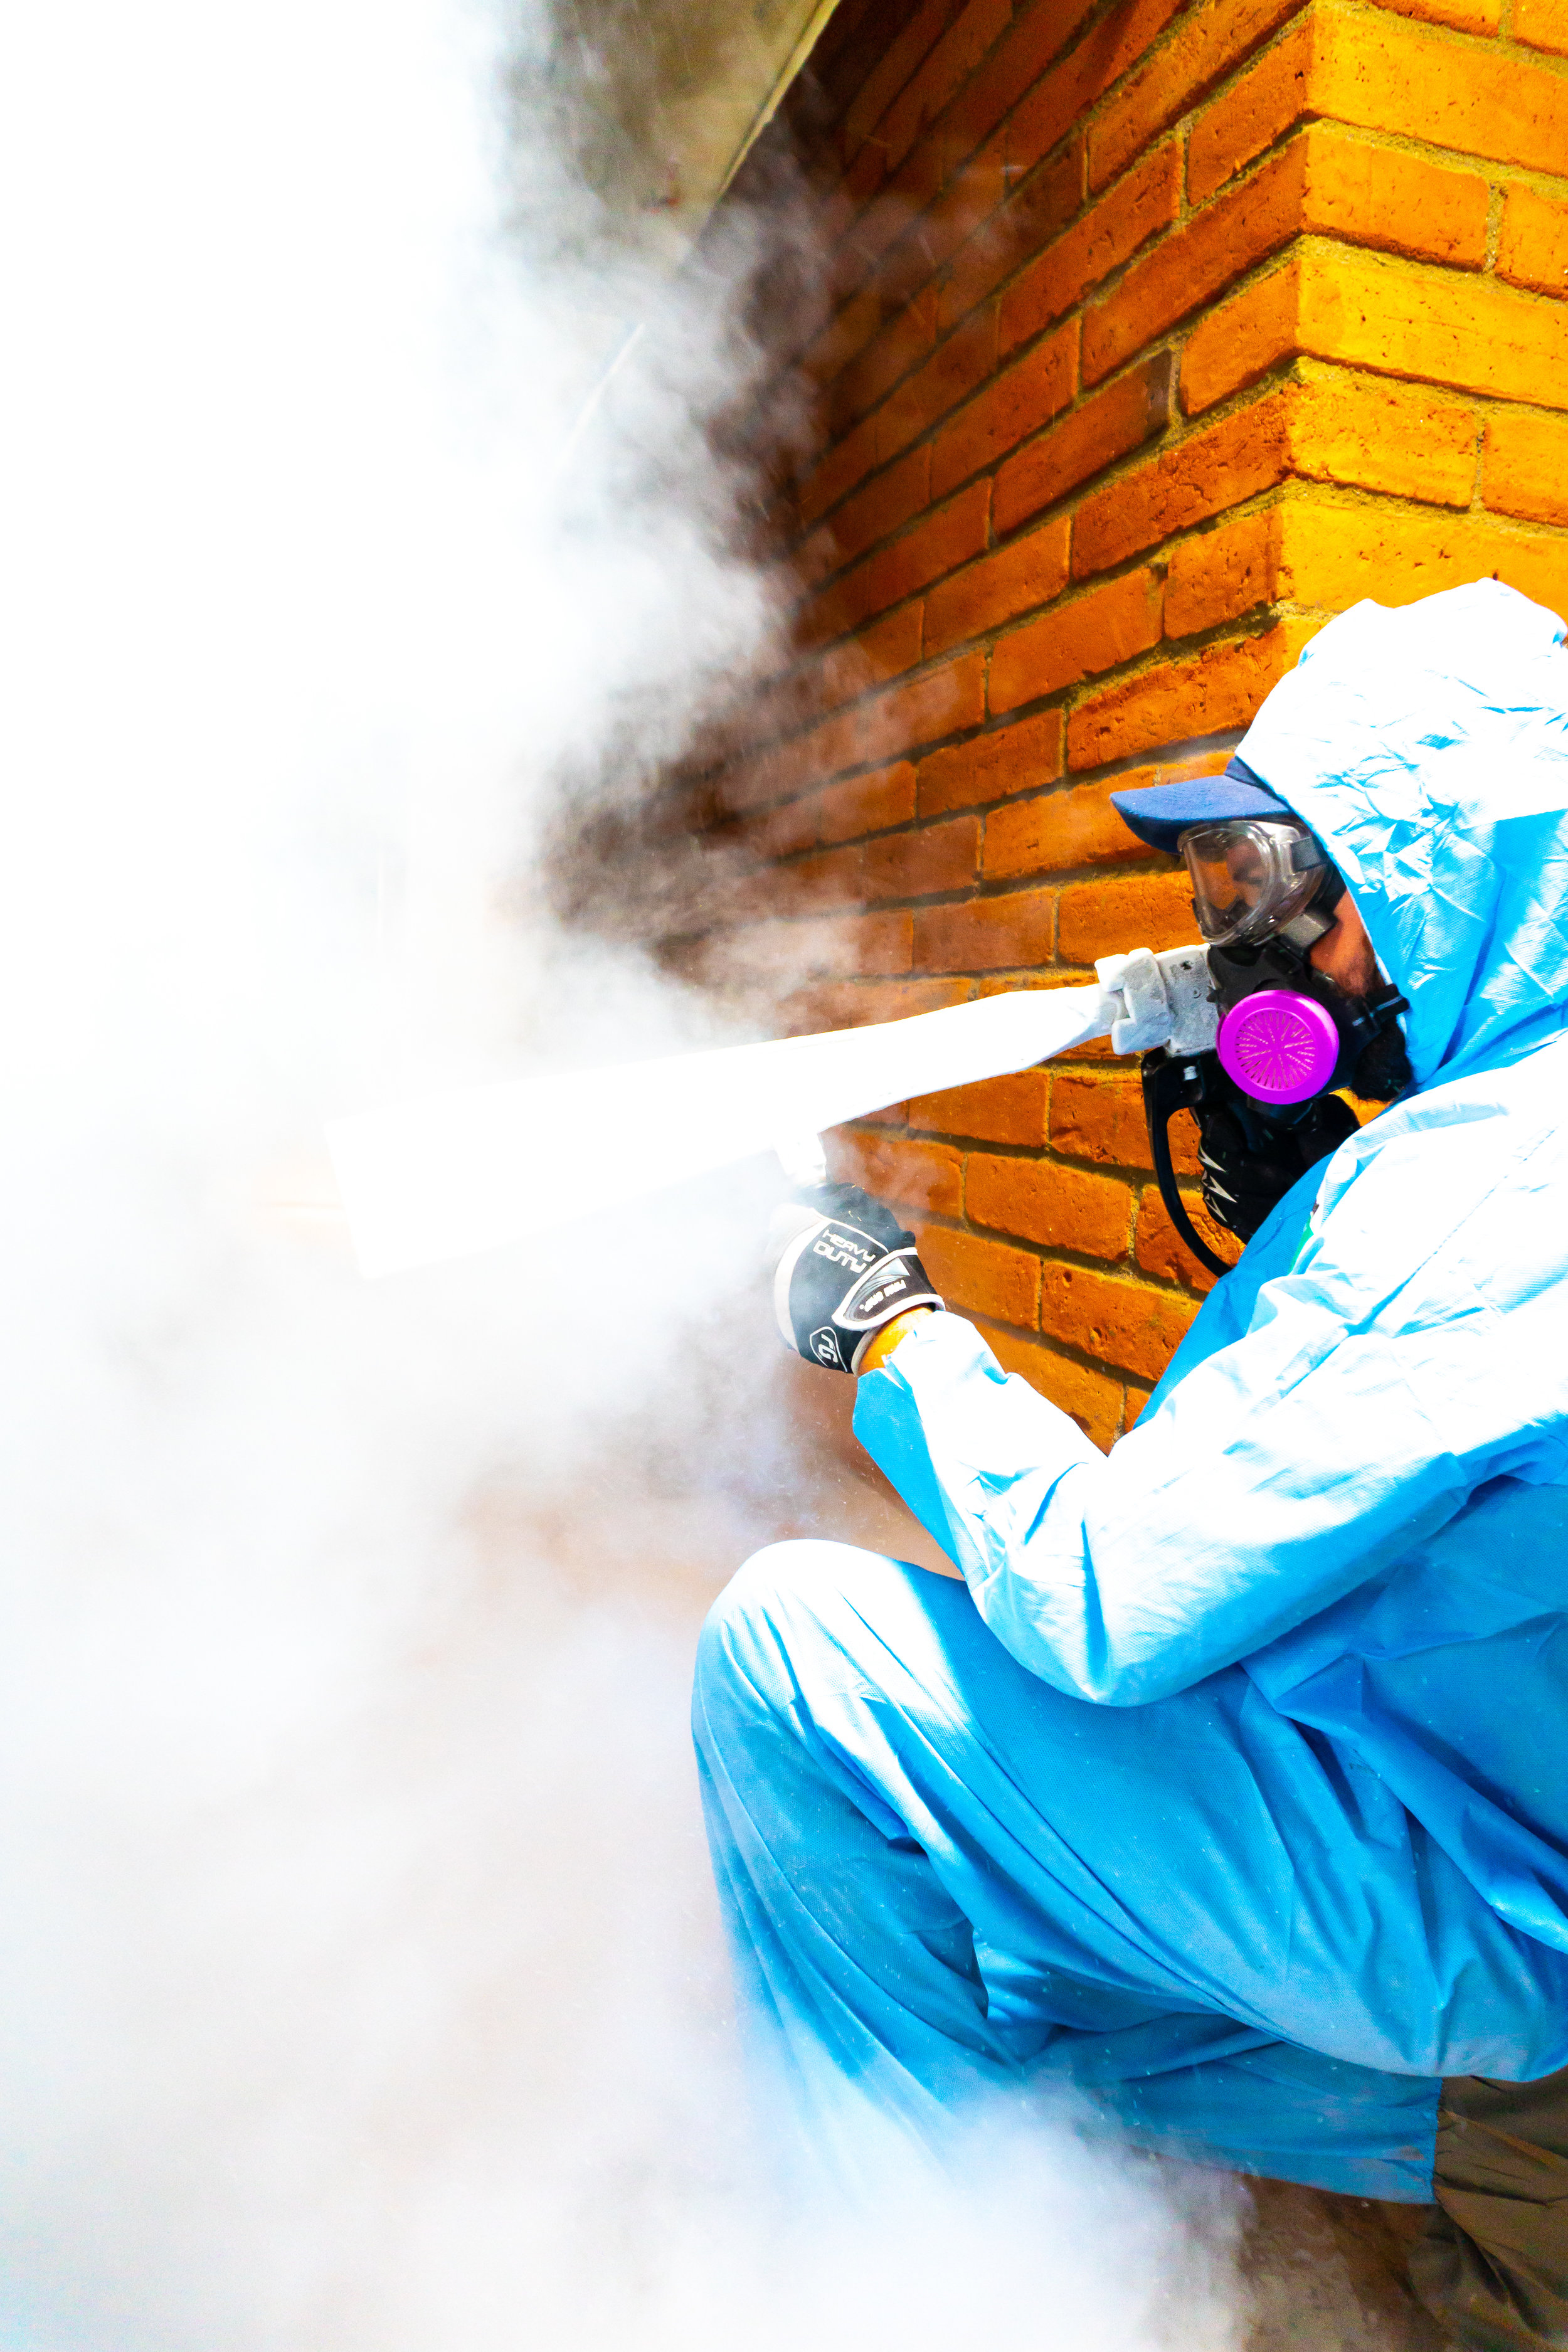 ADVANTAGES OF USING DRY ICE BLASTING: - • It's colorless, odorless, incombustible, non-abrasive, and non-conductive.• It contains no secondary contaminants.• It's a cleaning process that is approved for use in the food industry.• Items can be cleaned where they are located without disassembly• Can be used without effecting active electrical and mechanical parts.• Can remove biofilms, release agents, contaminants, paints, oils, and chemical residue.• Can be as gentle as cleaning dust inside an electrical panel or as destructive as removing weld slag